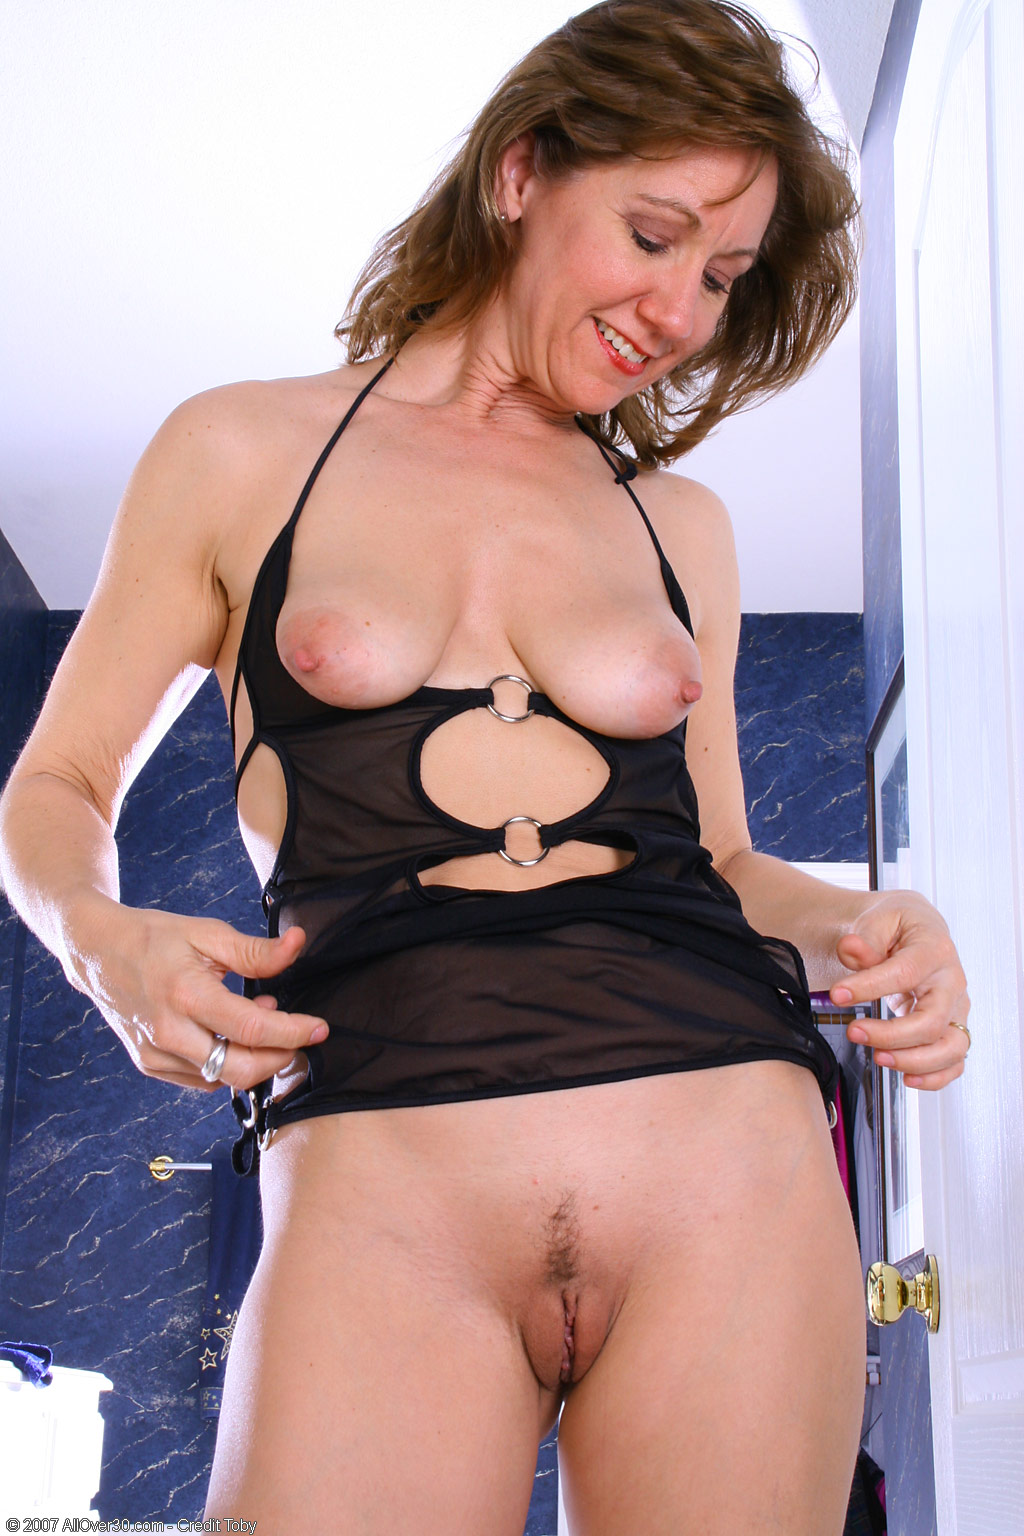 2 cocks complete for doll during frottage handjob 4